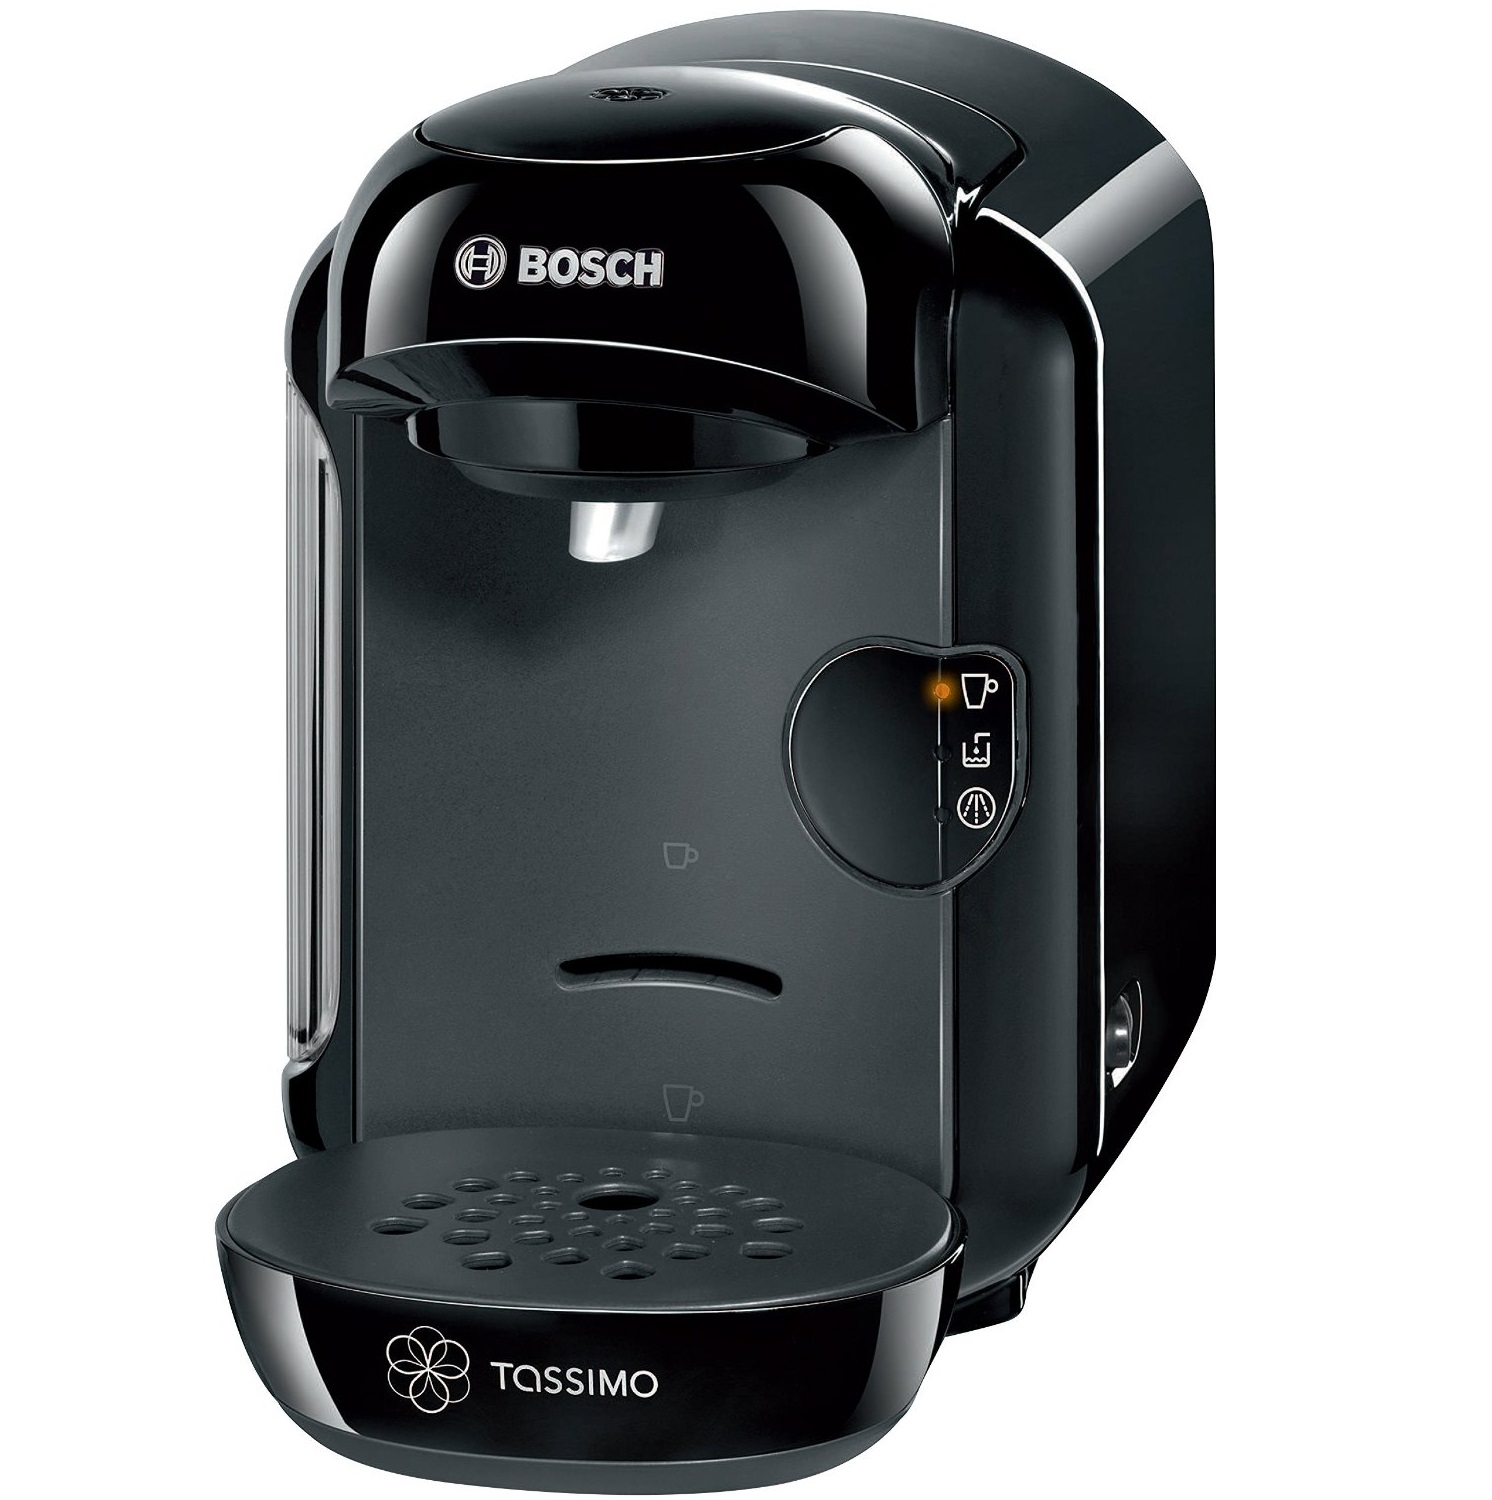 Bosch Coffee Maker Hot Water : BARGAIN Bosch Tassimo T12 Vivy TAS1202GB Hot Drinks & Coffee Machine NOW ?35 At Amazon ...